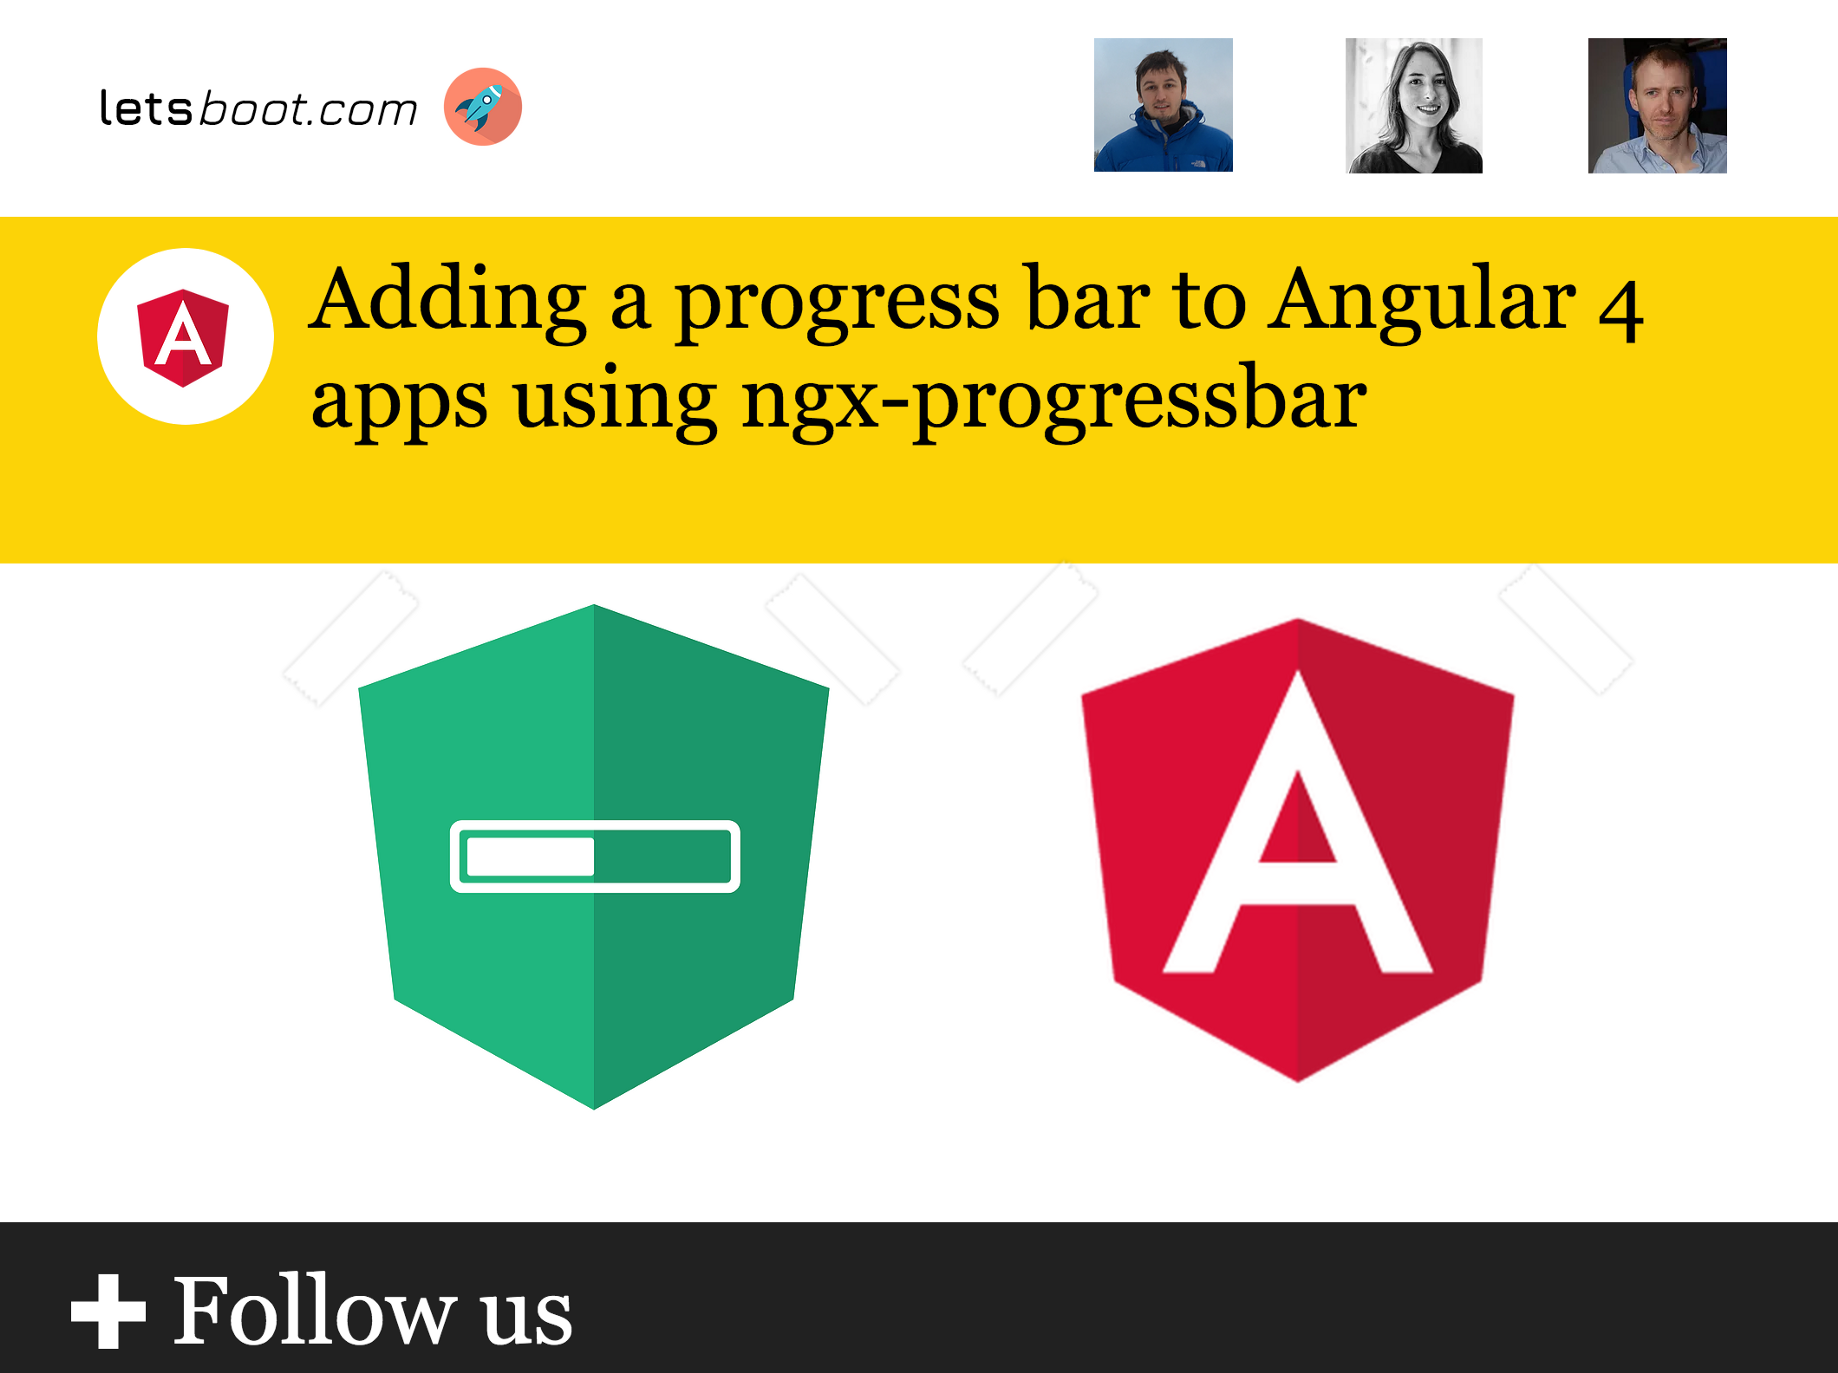 Let's add a progress bar to Angular 4 apps using ngx-progressbar